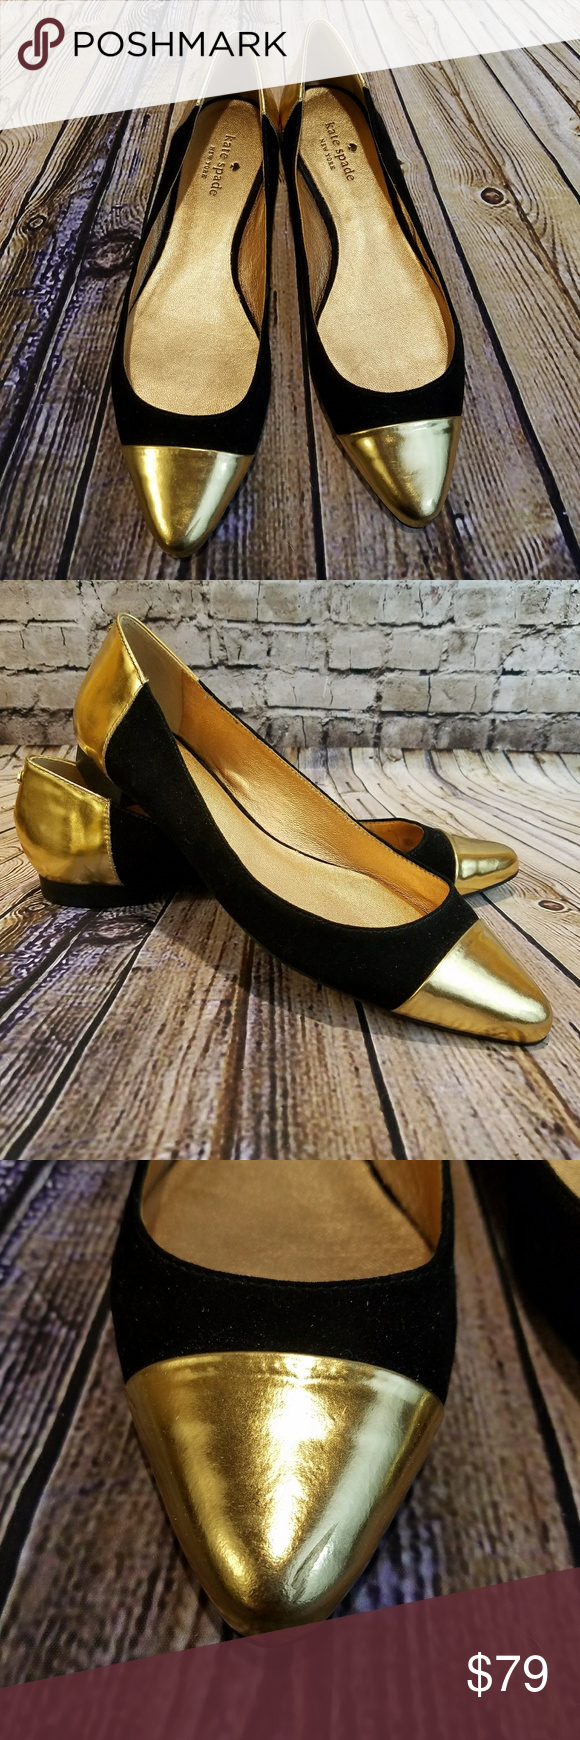 Kate Spade New York Elina Flat Worn Once!! In Excellent